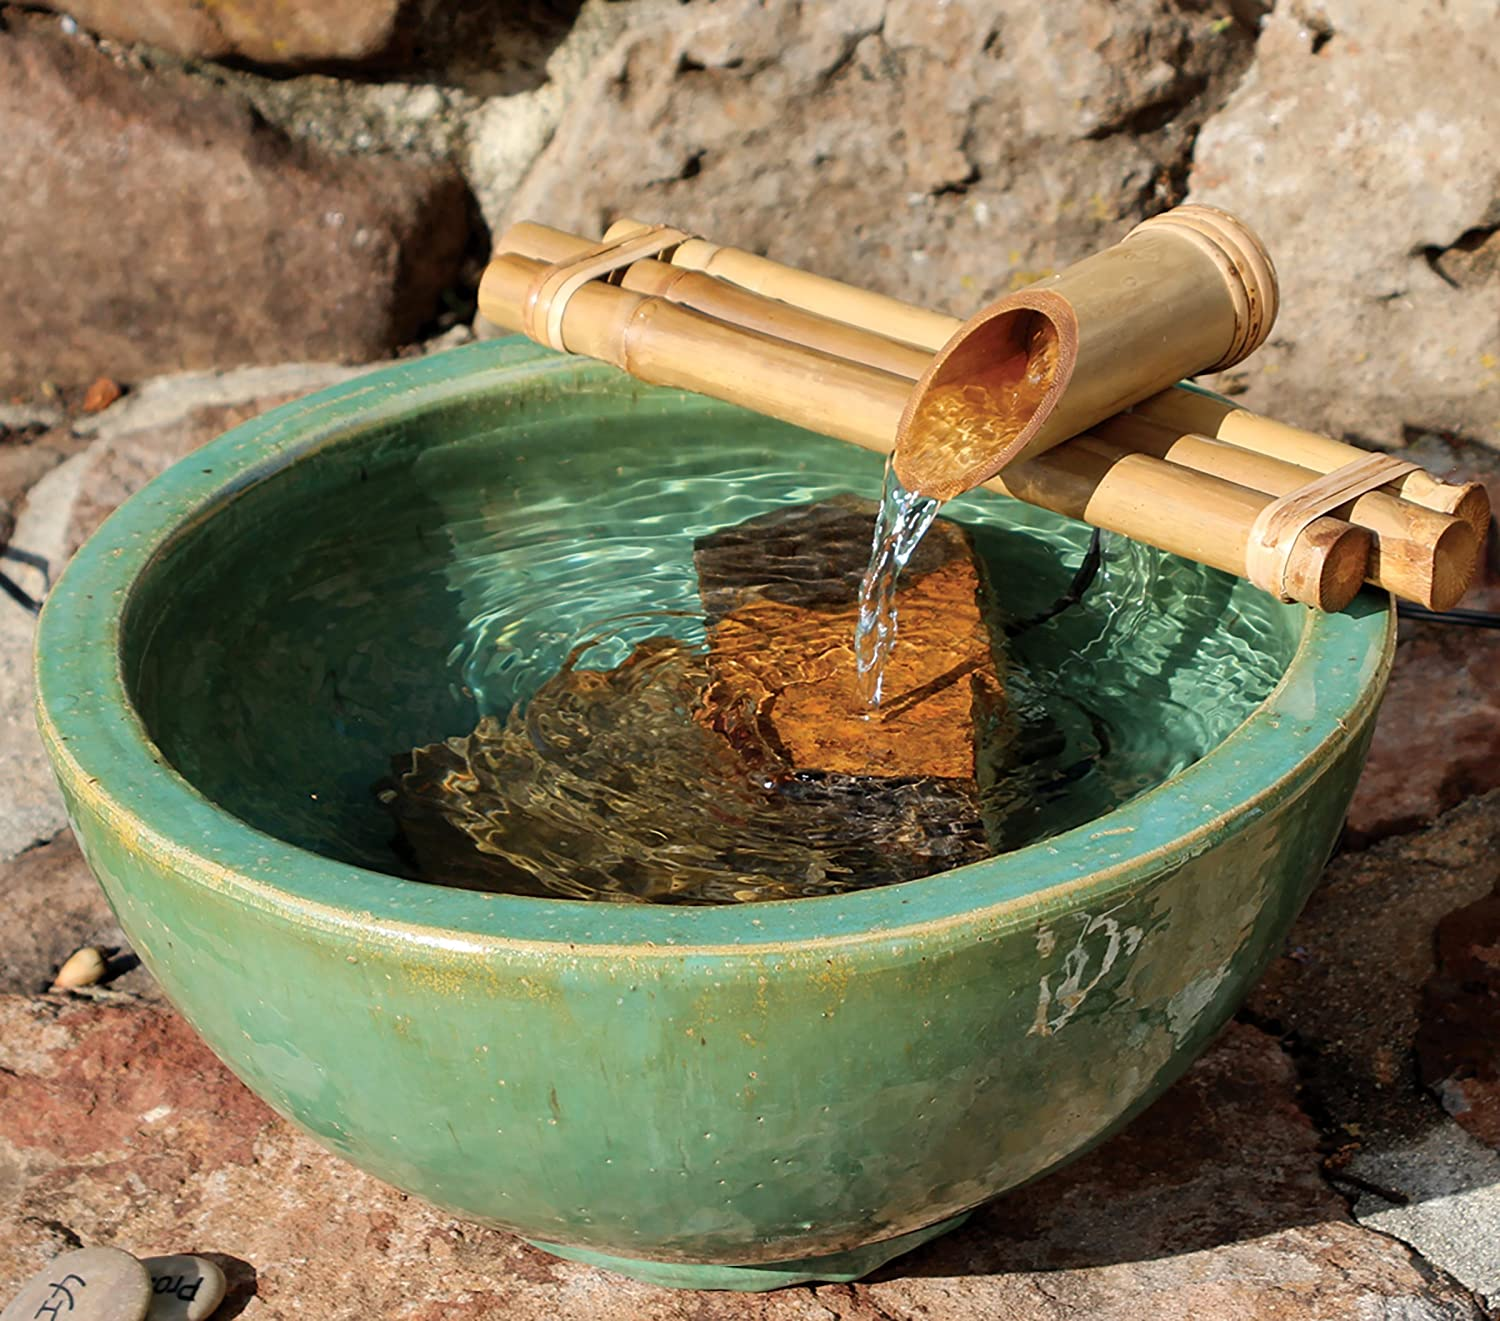 Bamboo Fountain with Pump Medium 12 Inch Three Arm Style, Indoor or Outdoor Fountain, Natural, Split Resistant Bamboo, Combine with Any Container to Create Your Own Fountain, Handmade